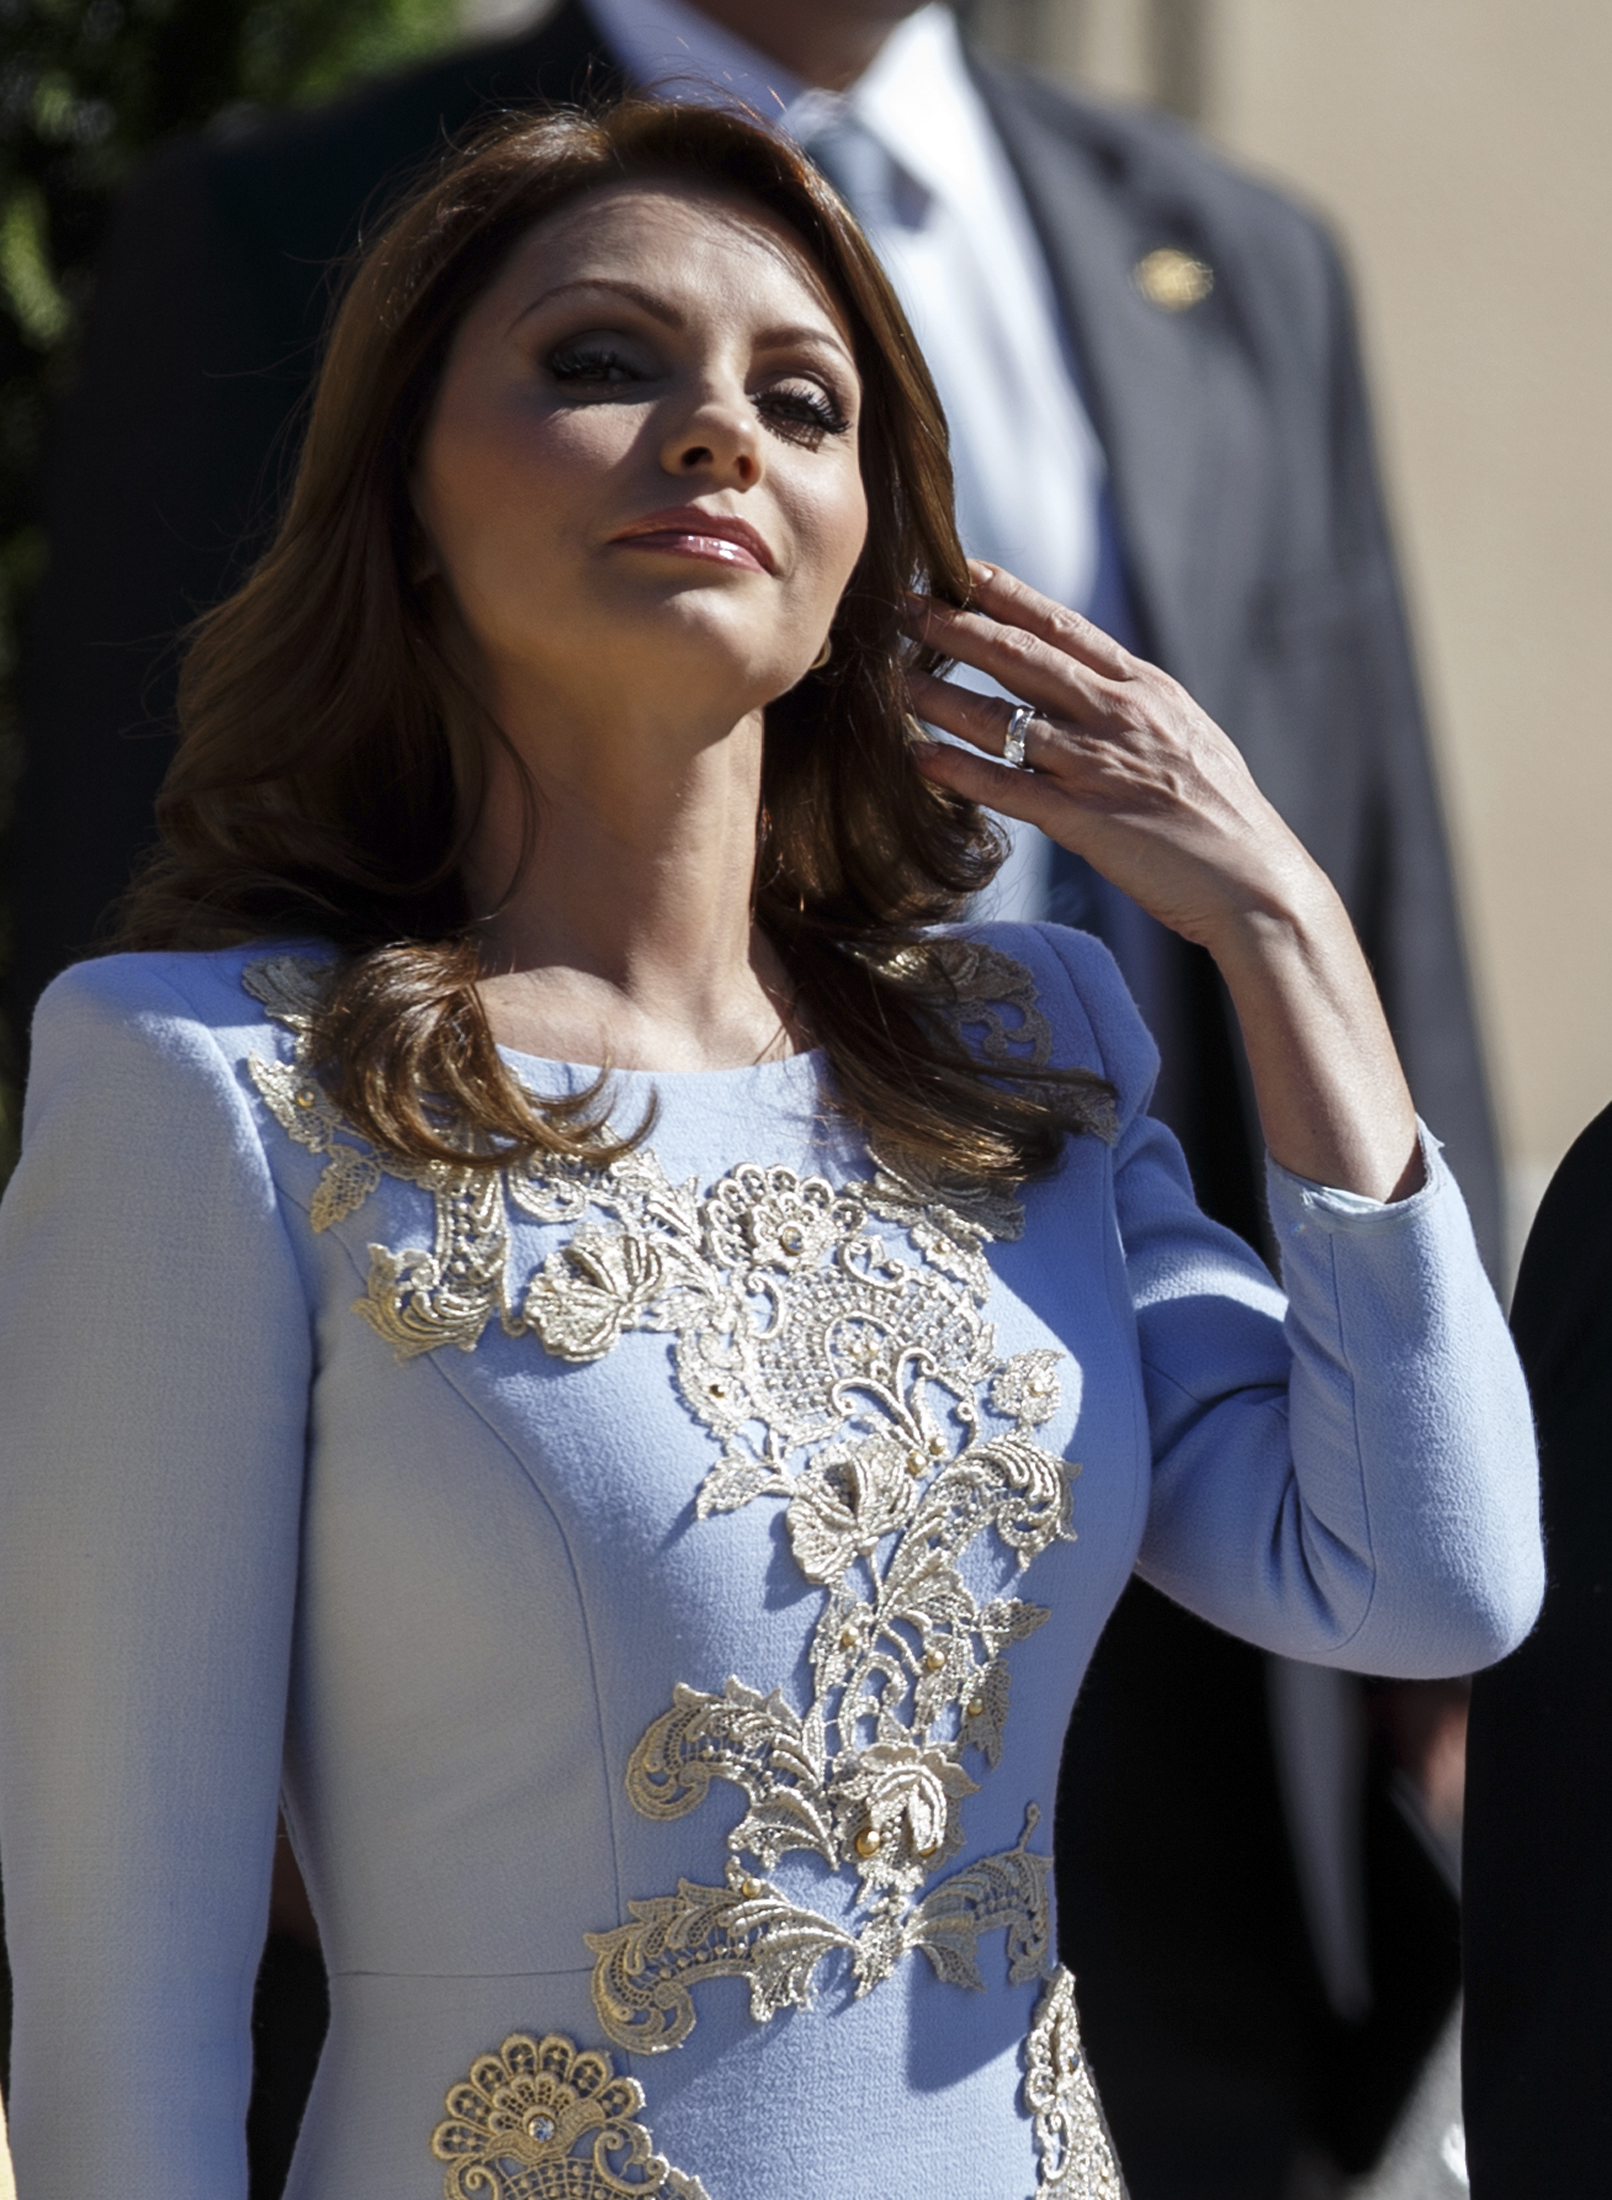 Mexico's First Lady Angelica Rivera attends an official welcome ceremony at Madrid's El Pardo palace June 9, 2014. Mexico's President Enrique Pena Nieto is on an official two-day visit to Spain. REUTERS/Andrea Comas (SPAIN - Tags: POLITICS) - RTR3SVII